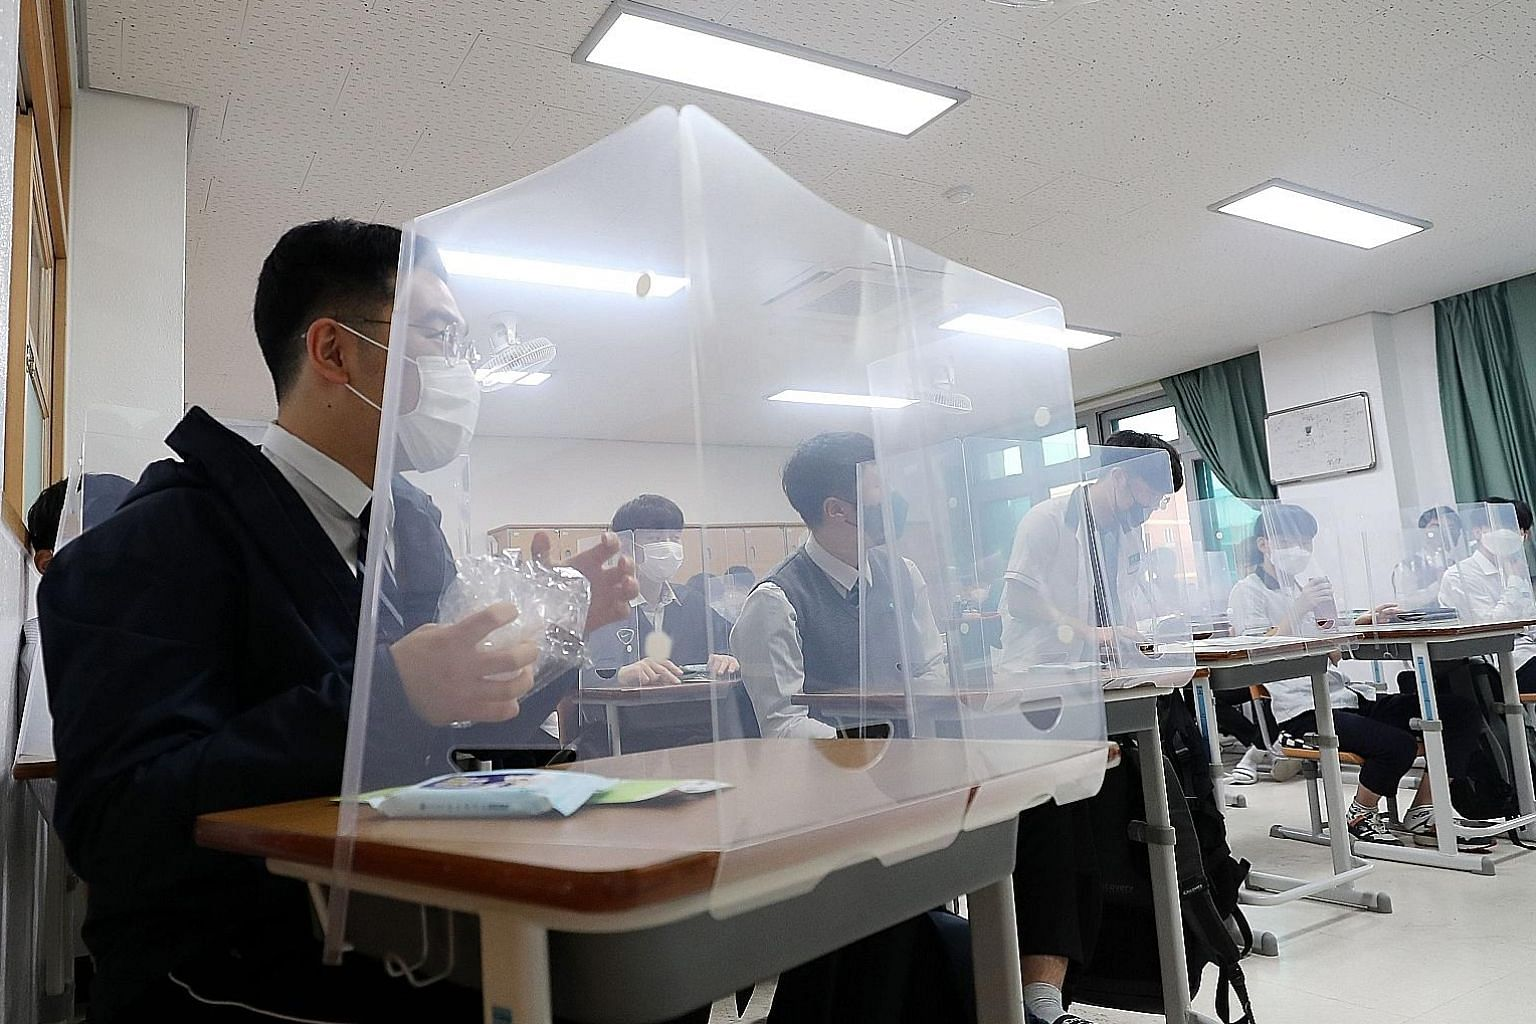 Above: High school seniors sitting behind protective shields as a preventative measure against the coronavirus in a classroom in Daejeon, South Korea, yesterday. Below: Some seniors standing in line to enter the cafeteria as high schools nationwide r